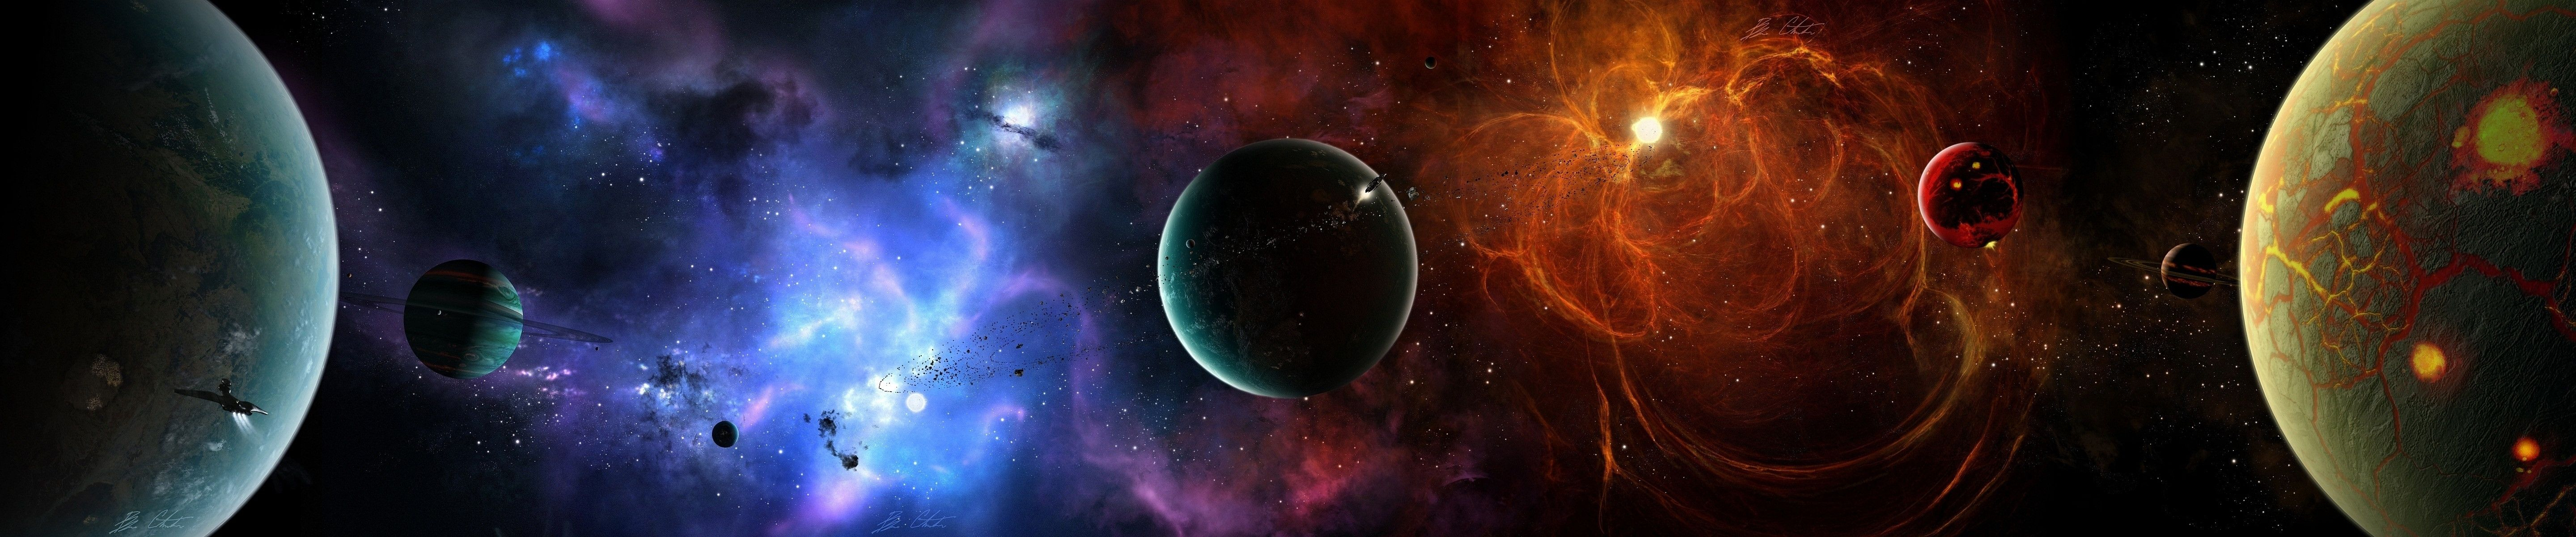 Cool Space Wallpapers